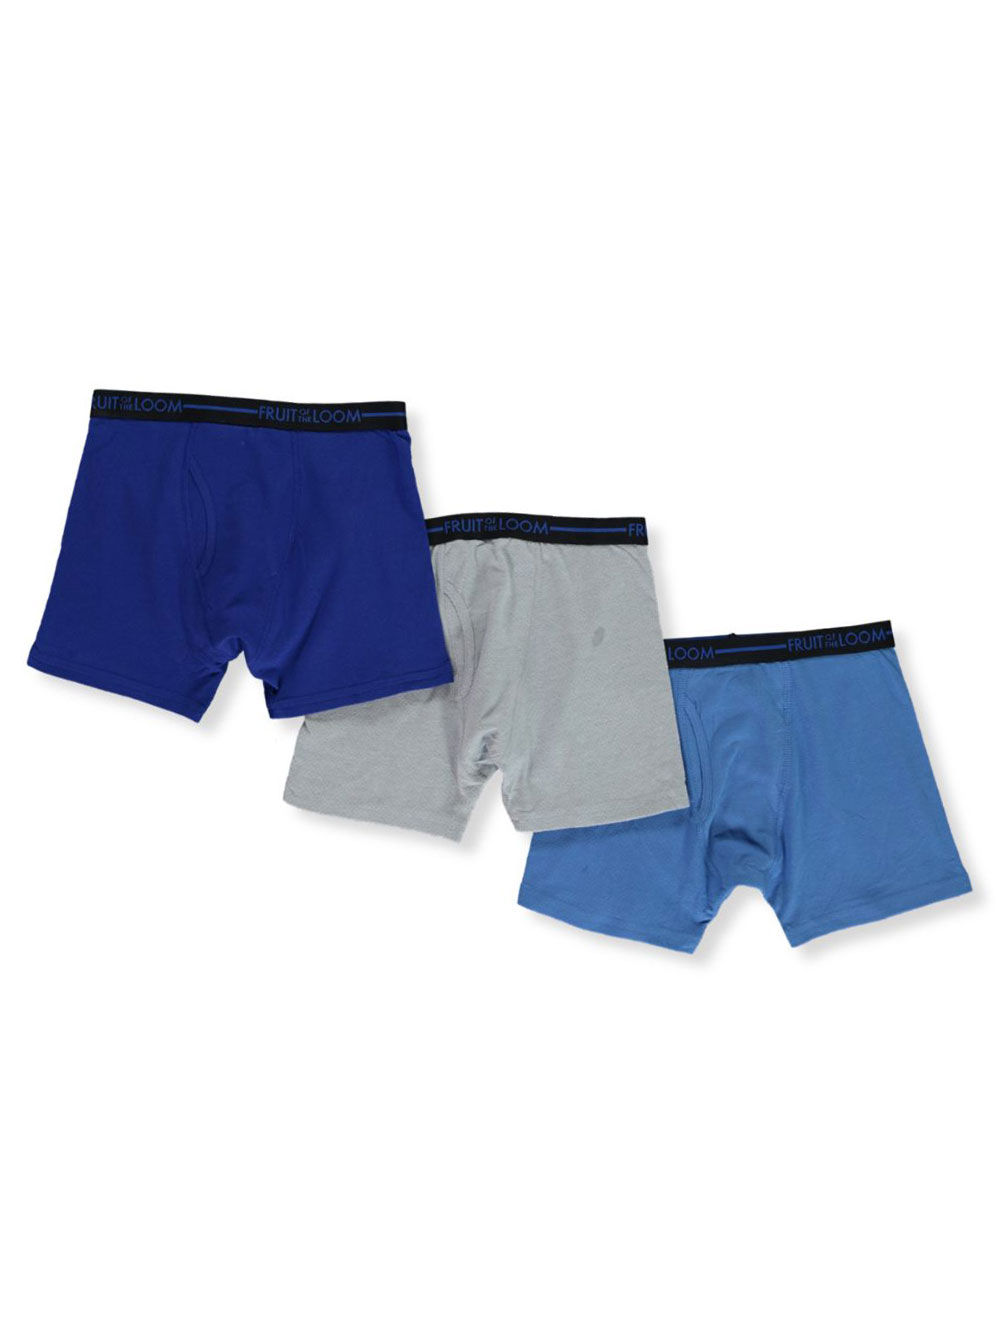 Underwear Loom 3-Pack Boxer Briefs